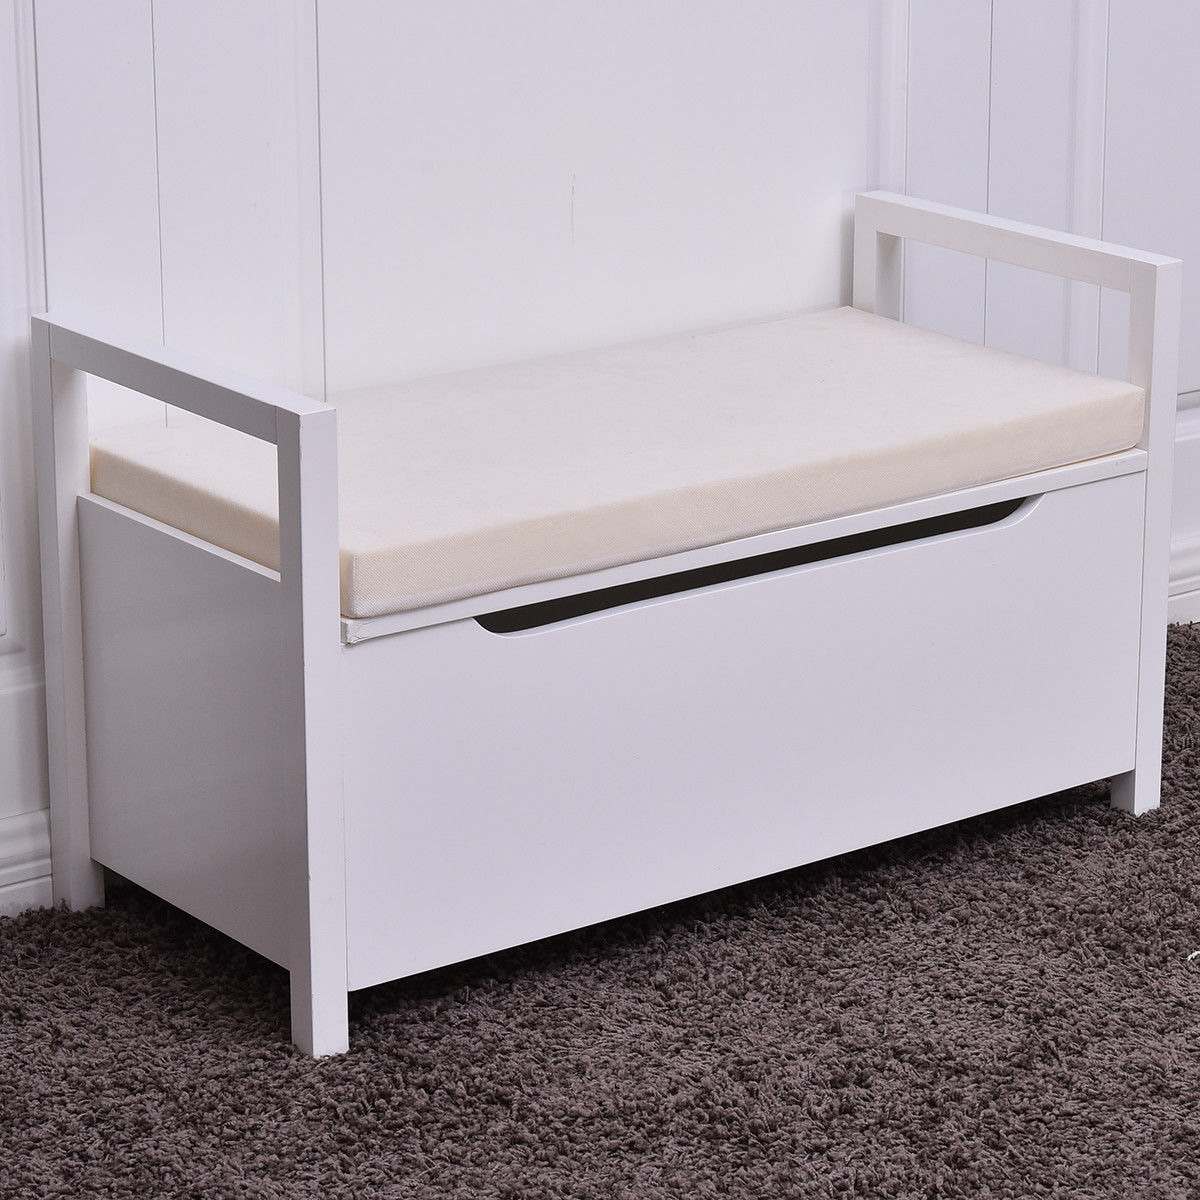 Costway Shoe Bench Storage Rack Cushion Seat Ottoman Bedroom Hallway  Entryway White